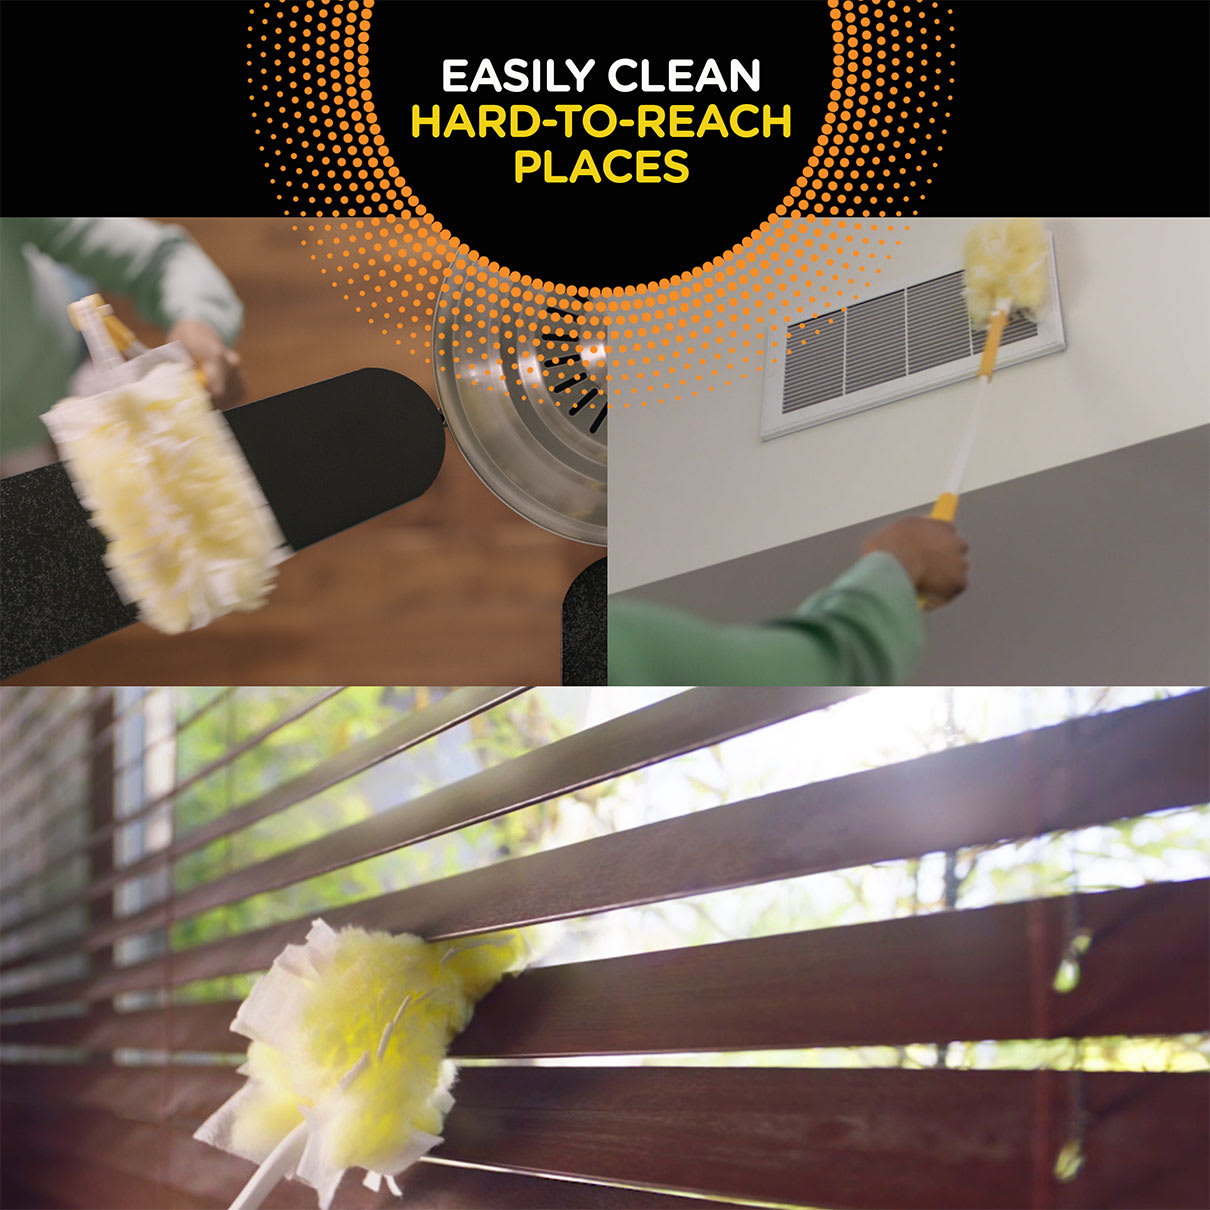 Swiffer Duster Easy Clean Hard to Reach Places